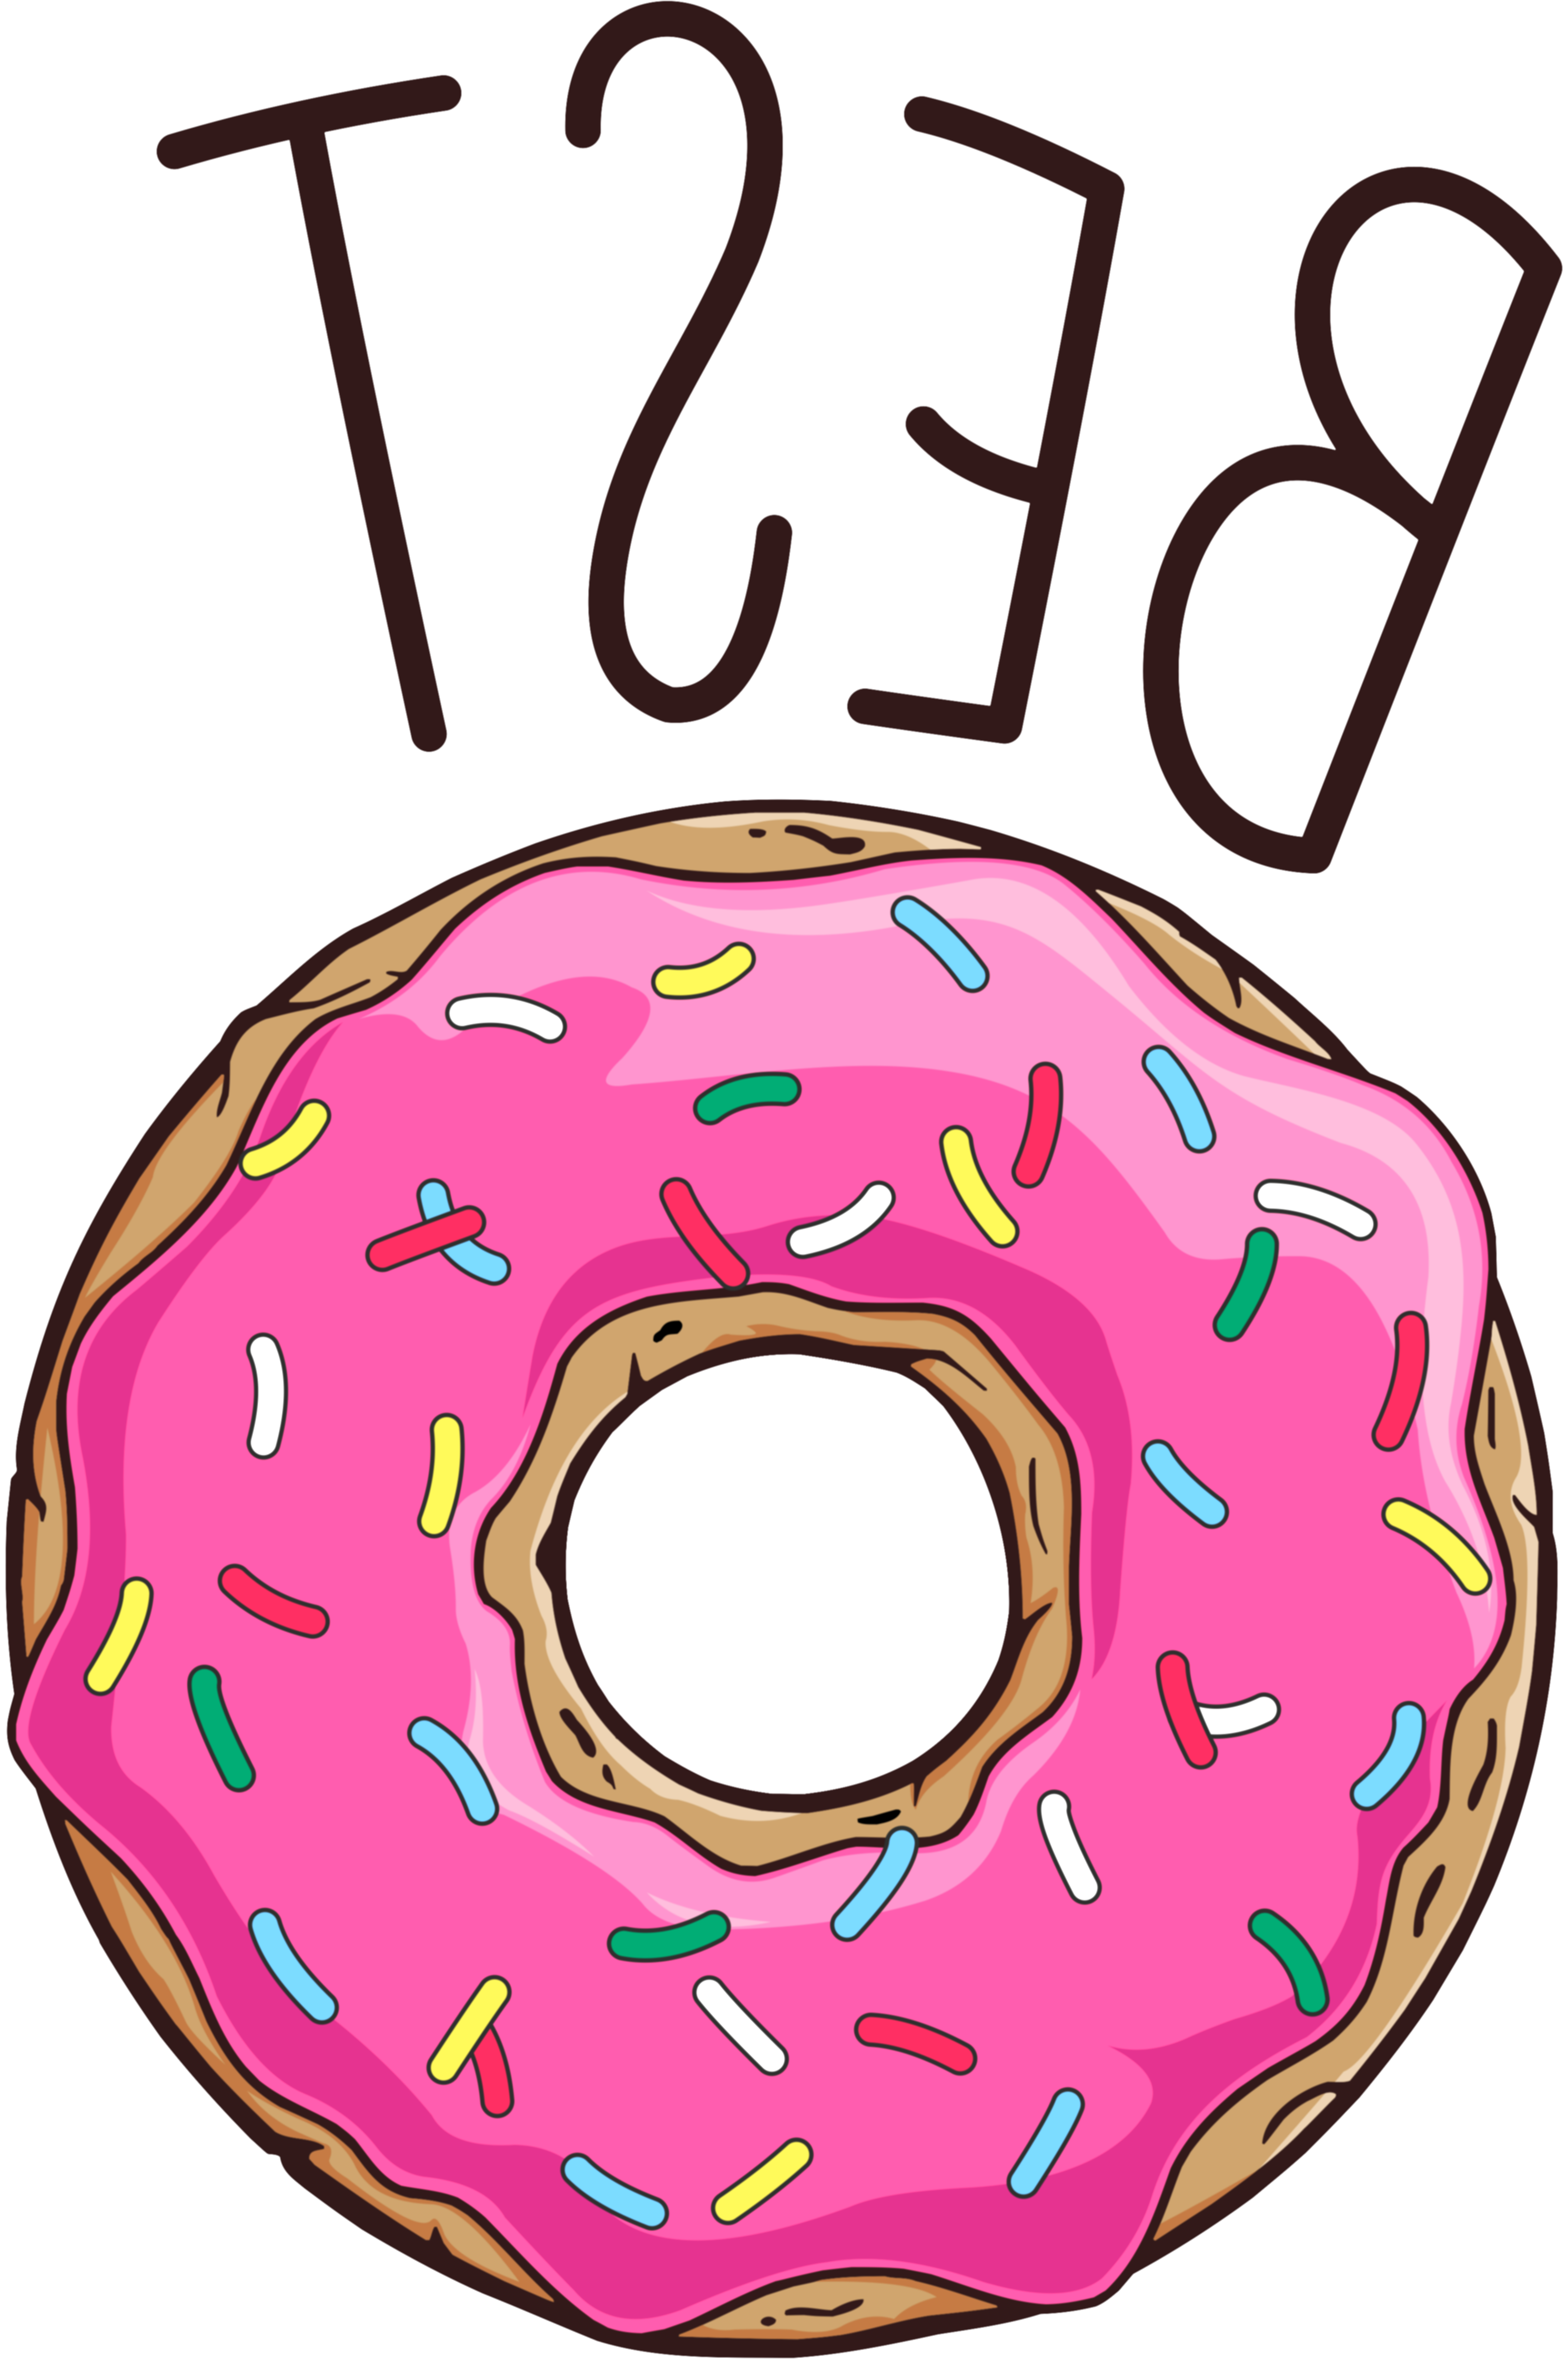 Donut and coffee friends clipart (Donut)